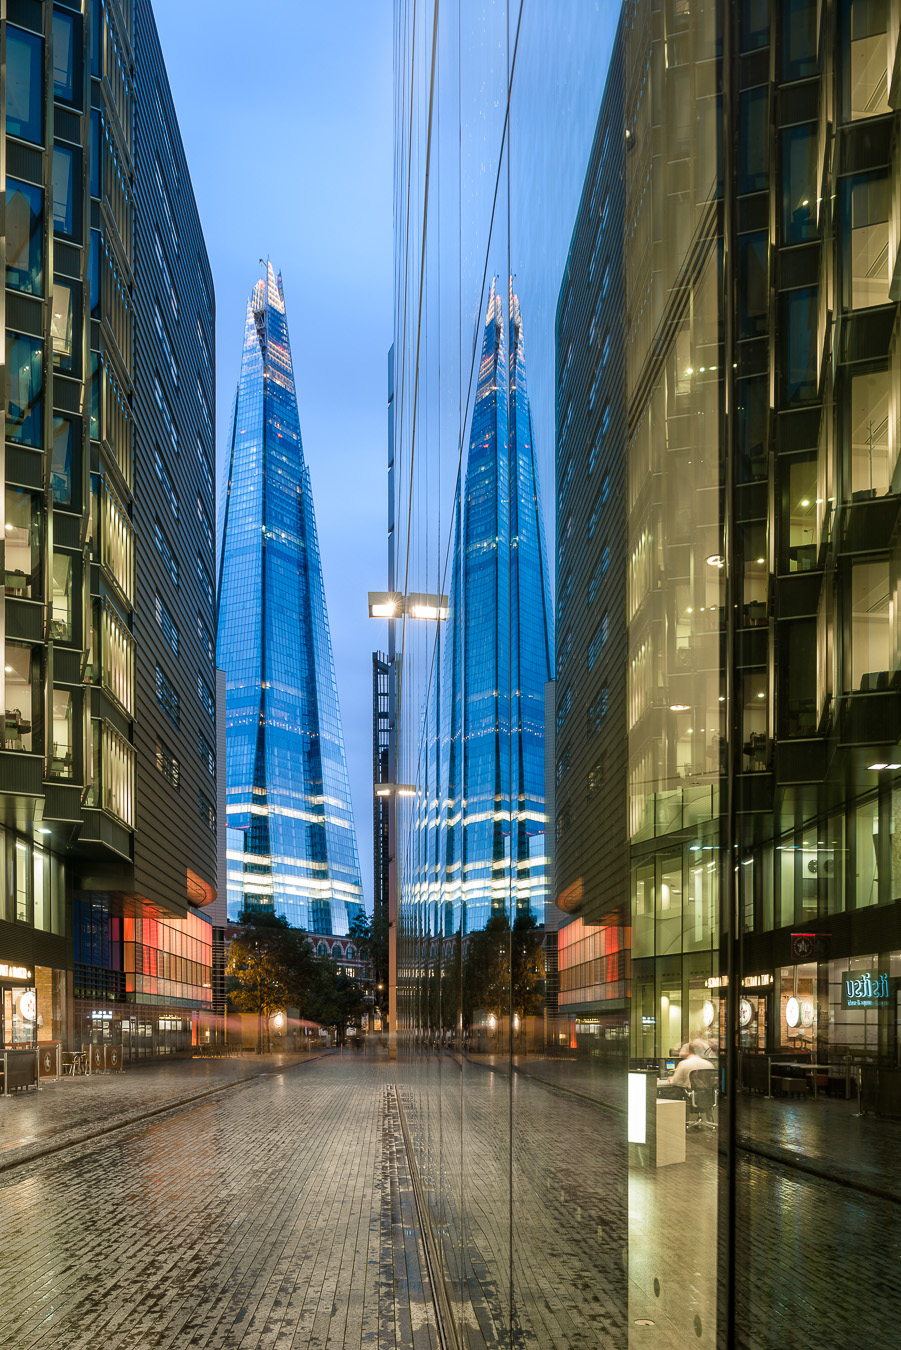 38-doublespace architectural photography london   riverside Shard Renzo Piano-.jpg